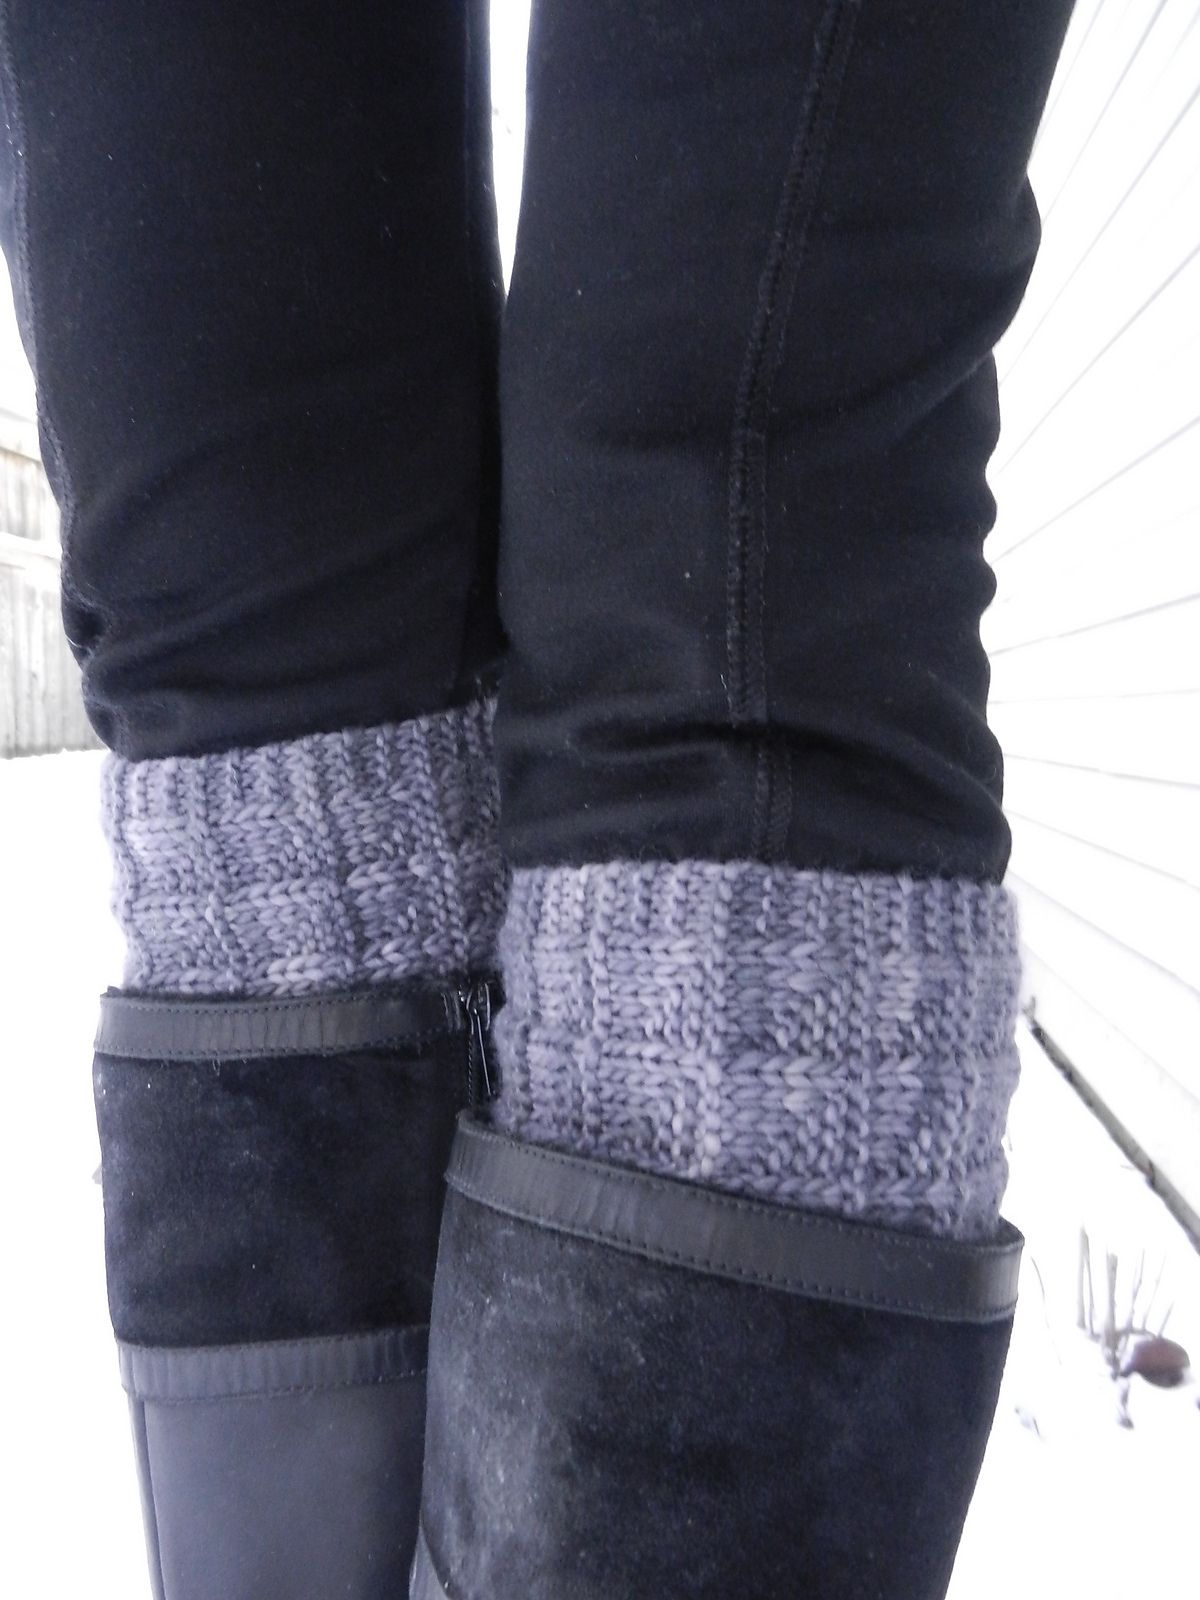 Ravelry: 2-Needle Boot Toppers / Cuffs by Kris Basta - Kriskrafter ...